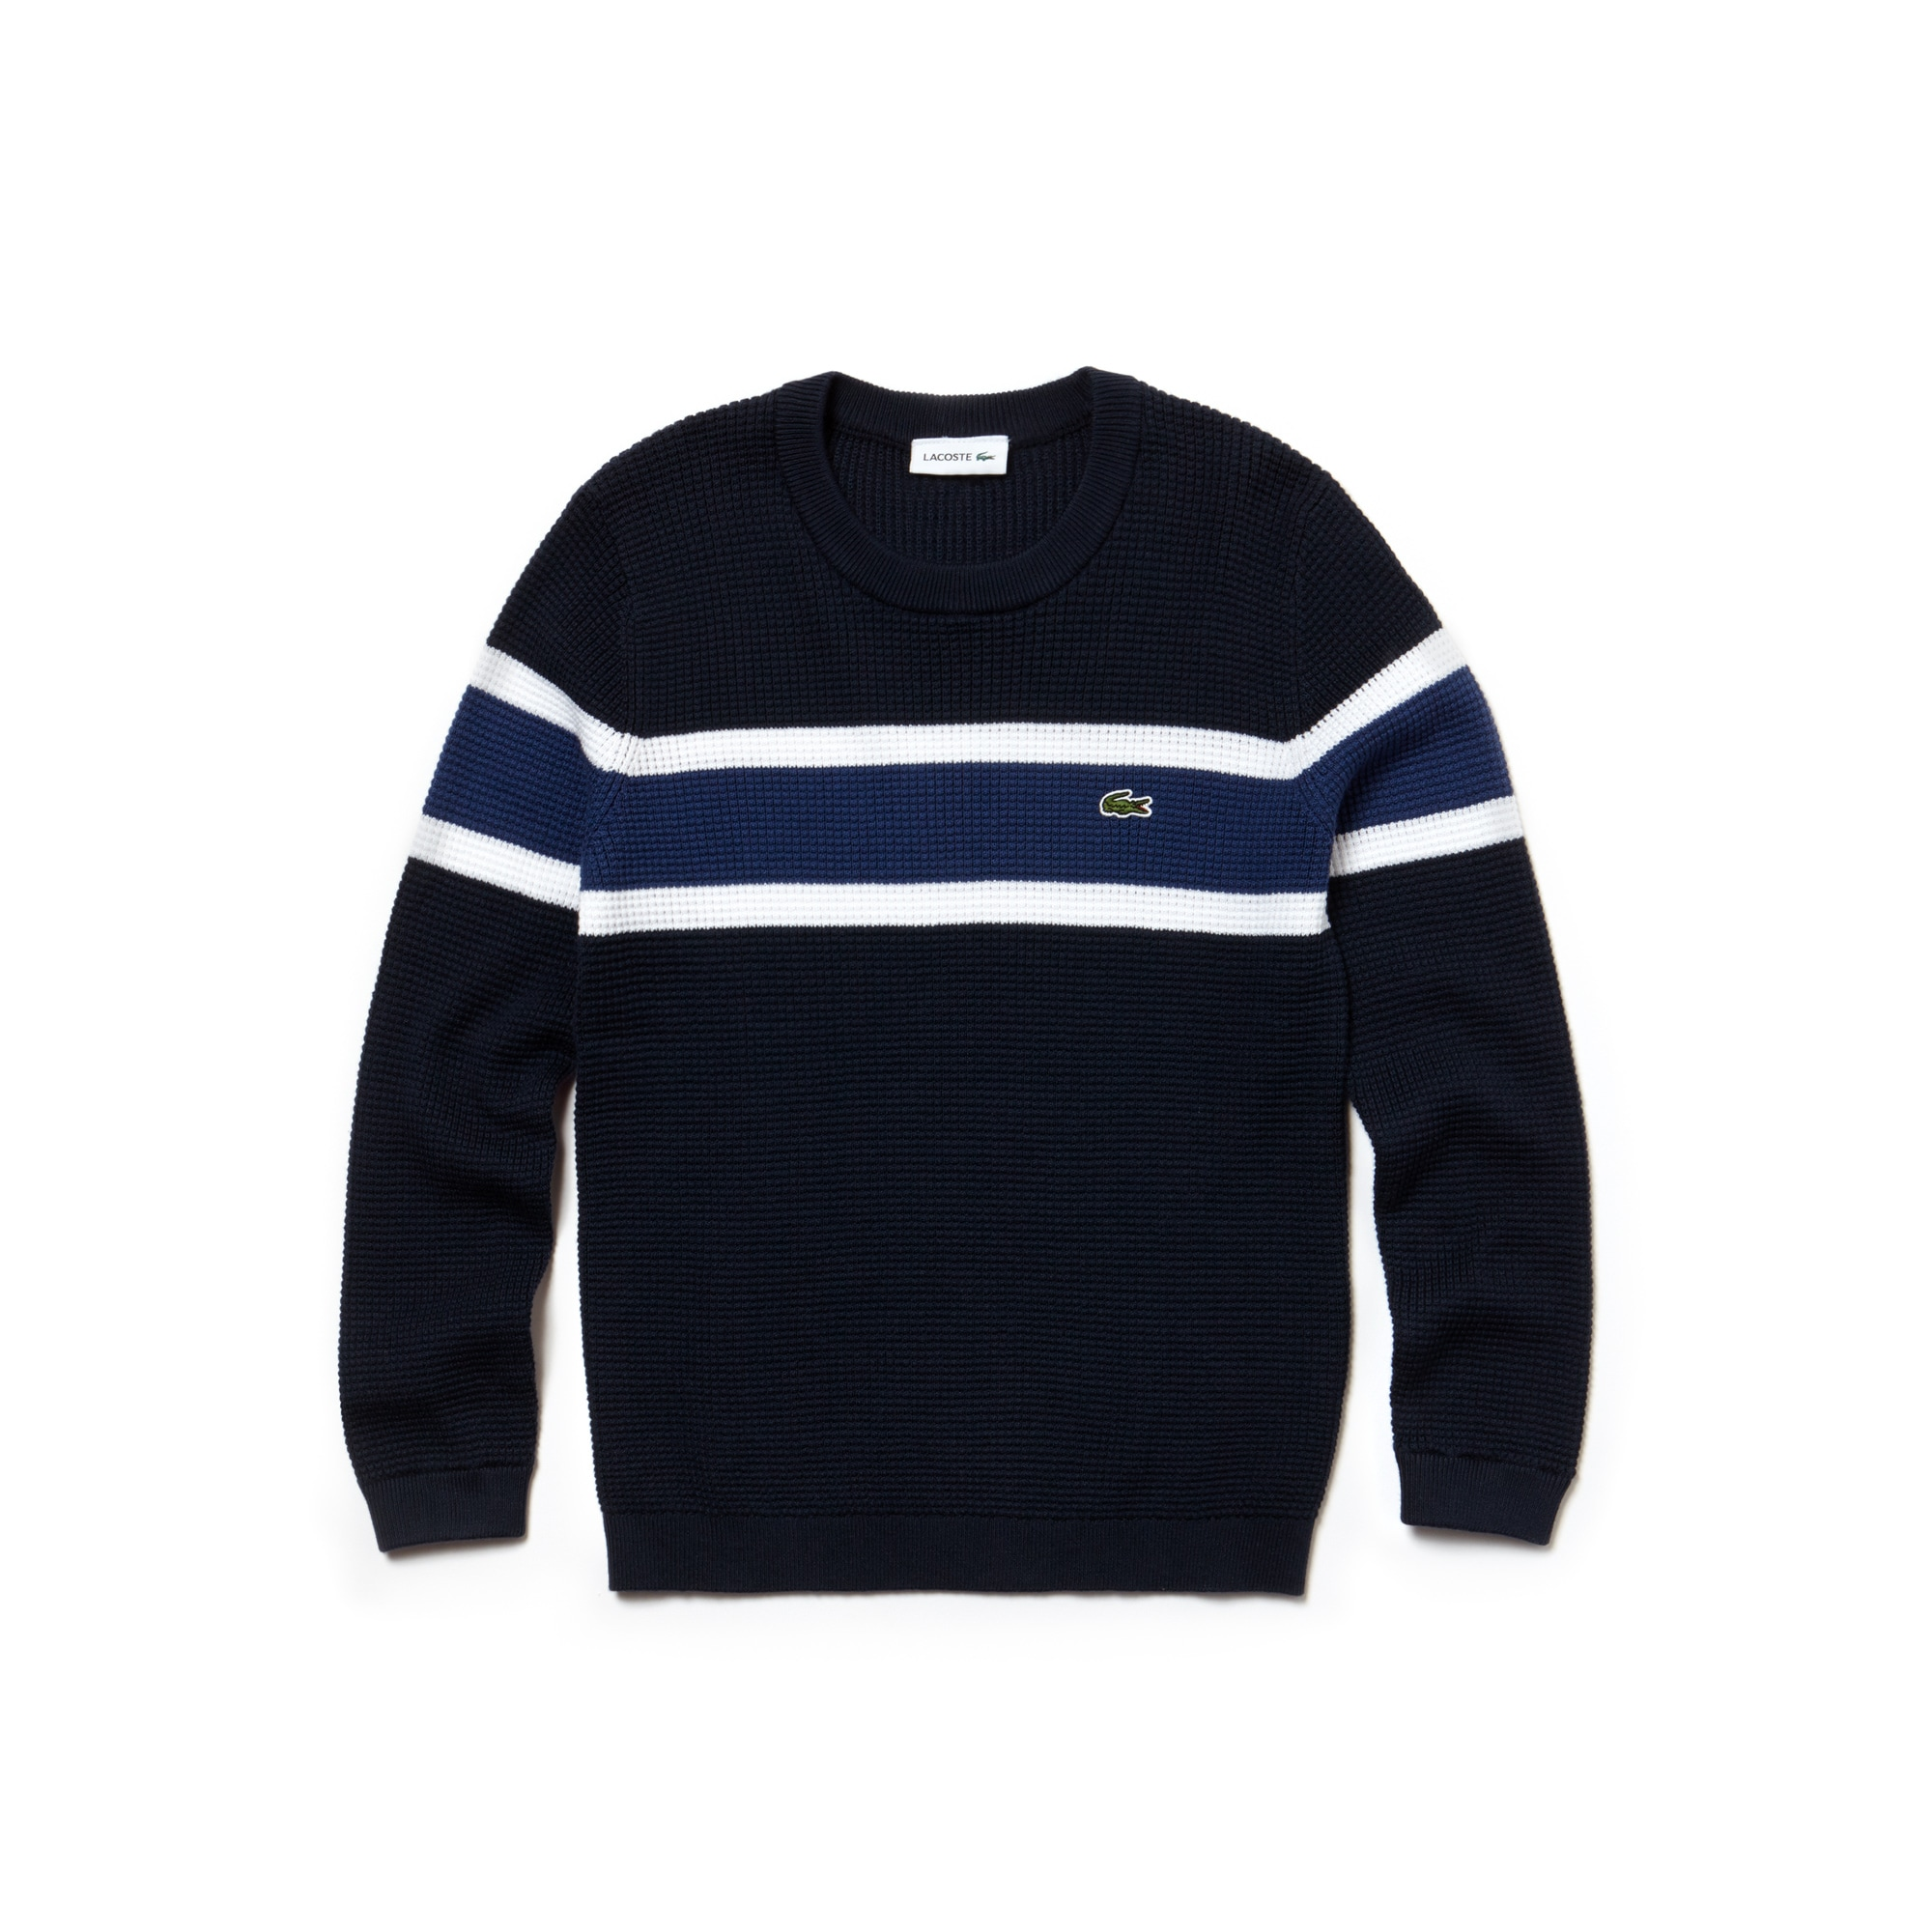 Boys' Crew Neck Contrast Bands Honeycomb Cotton Sweater